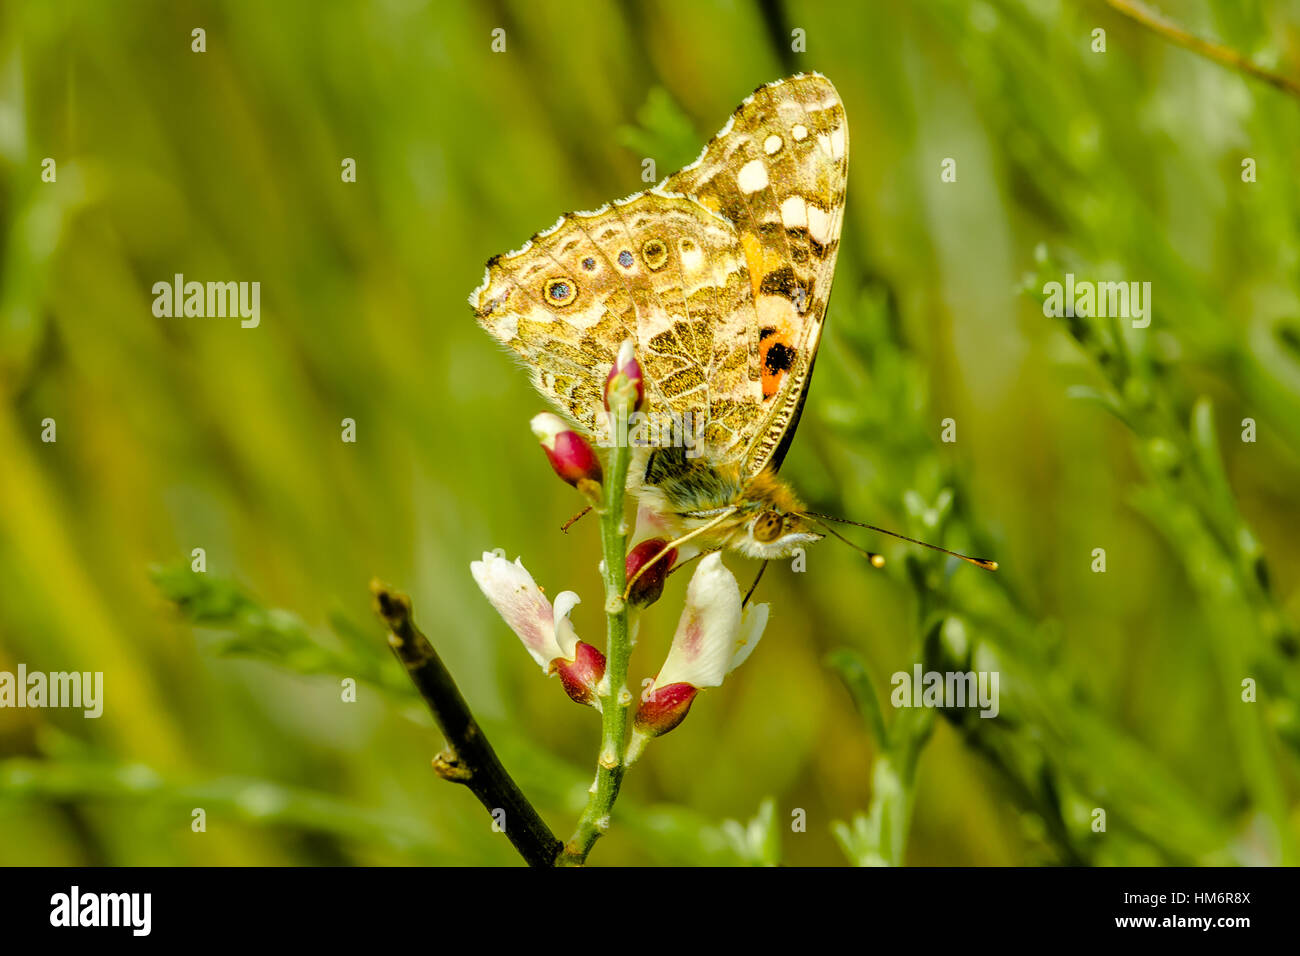 Close up on butterfly - Stock Image